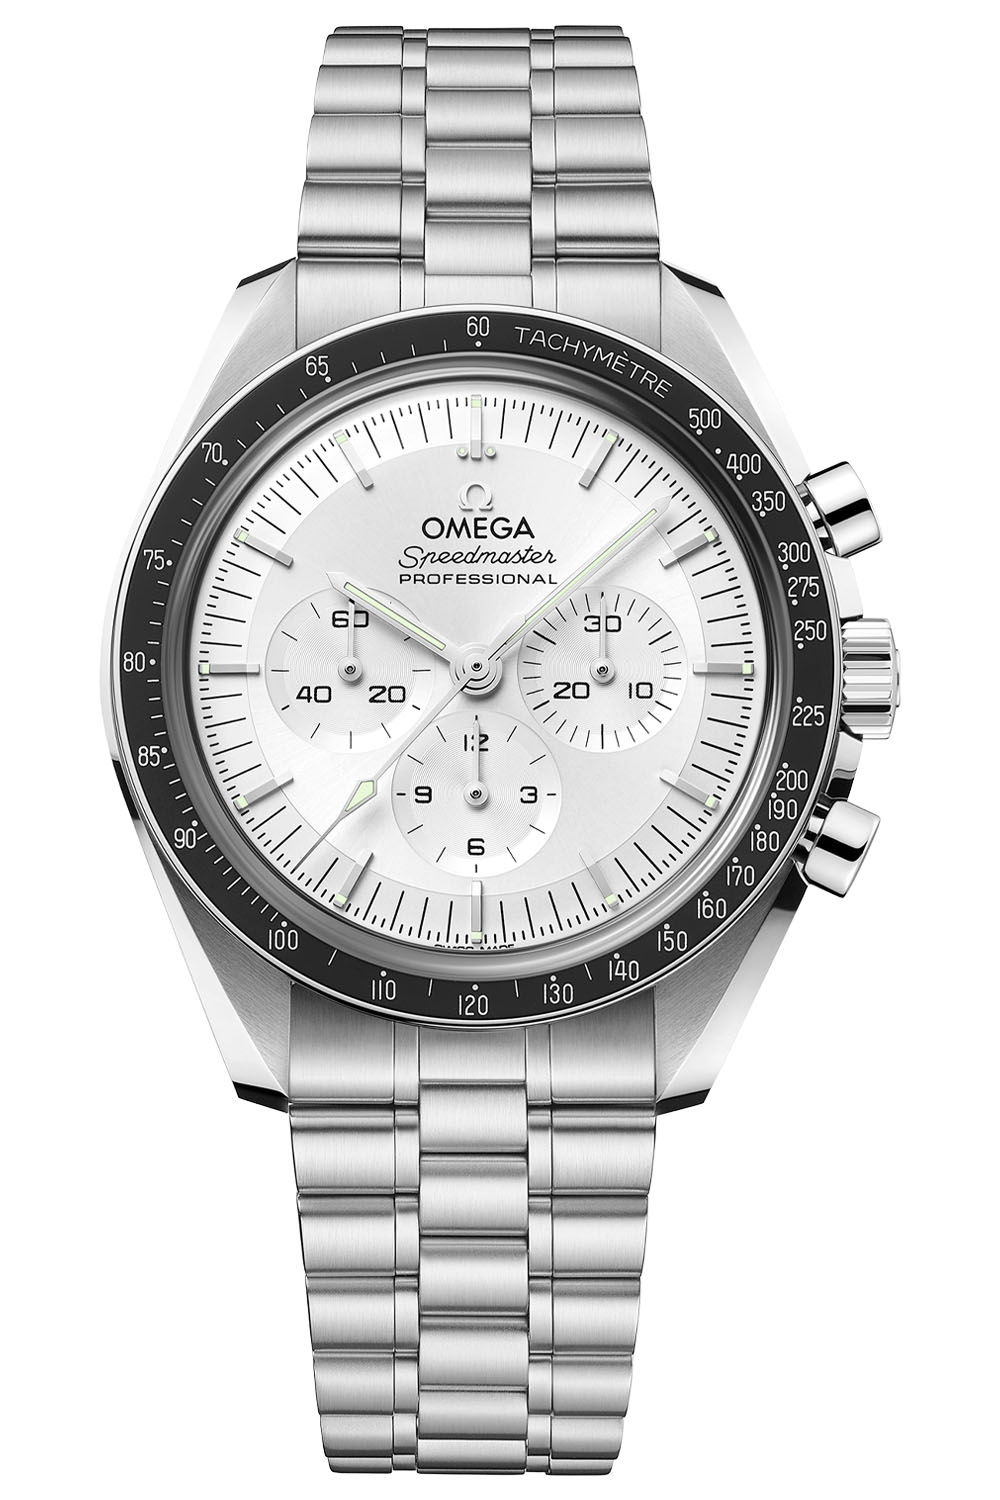 Omega Speedmaster Moonwatch Professional Master Chronometer Canopus silver dial